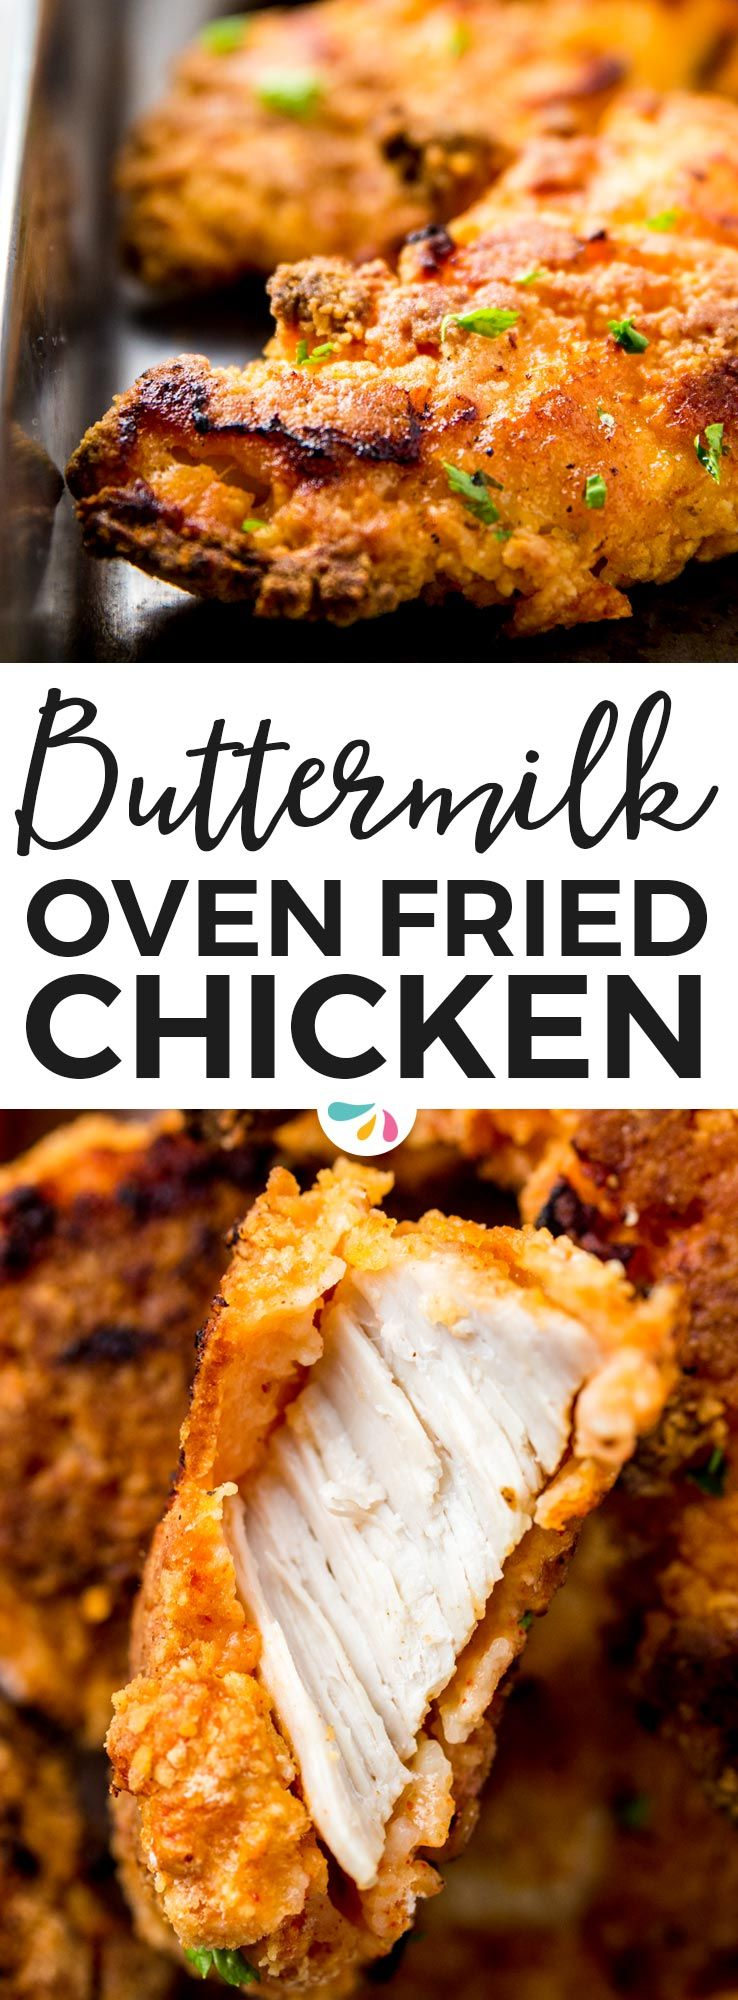 The Best Crispy Buttermilk Oven Fried Chicken You Won T Be Disappointed By This Recipe Buttermilk Oven Fried Chicken Fries In The Oven Fried Chicken Recipes